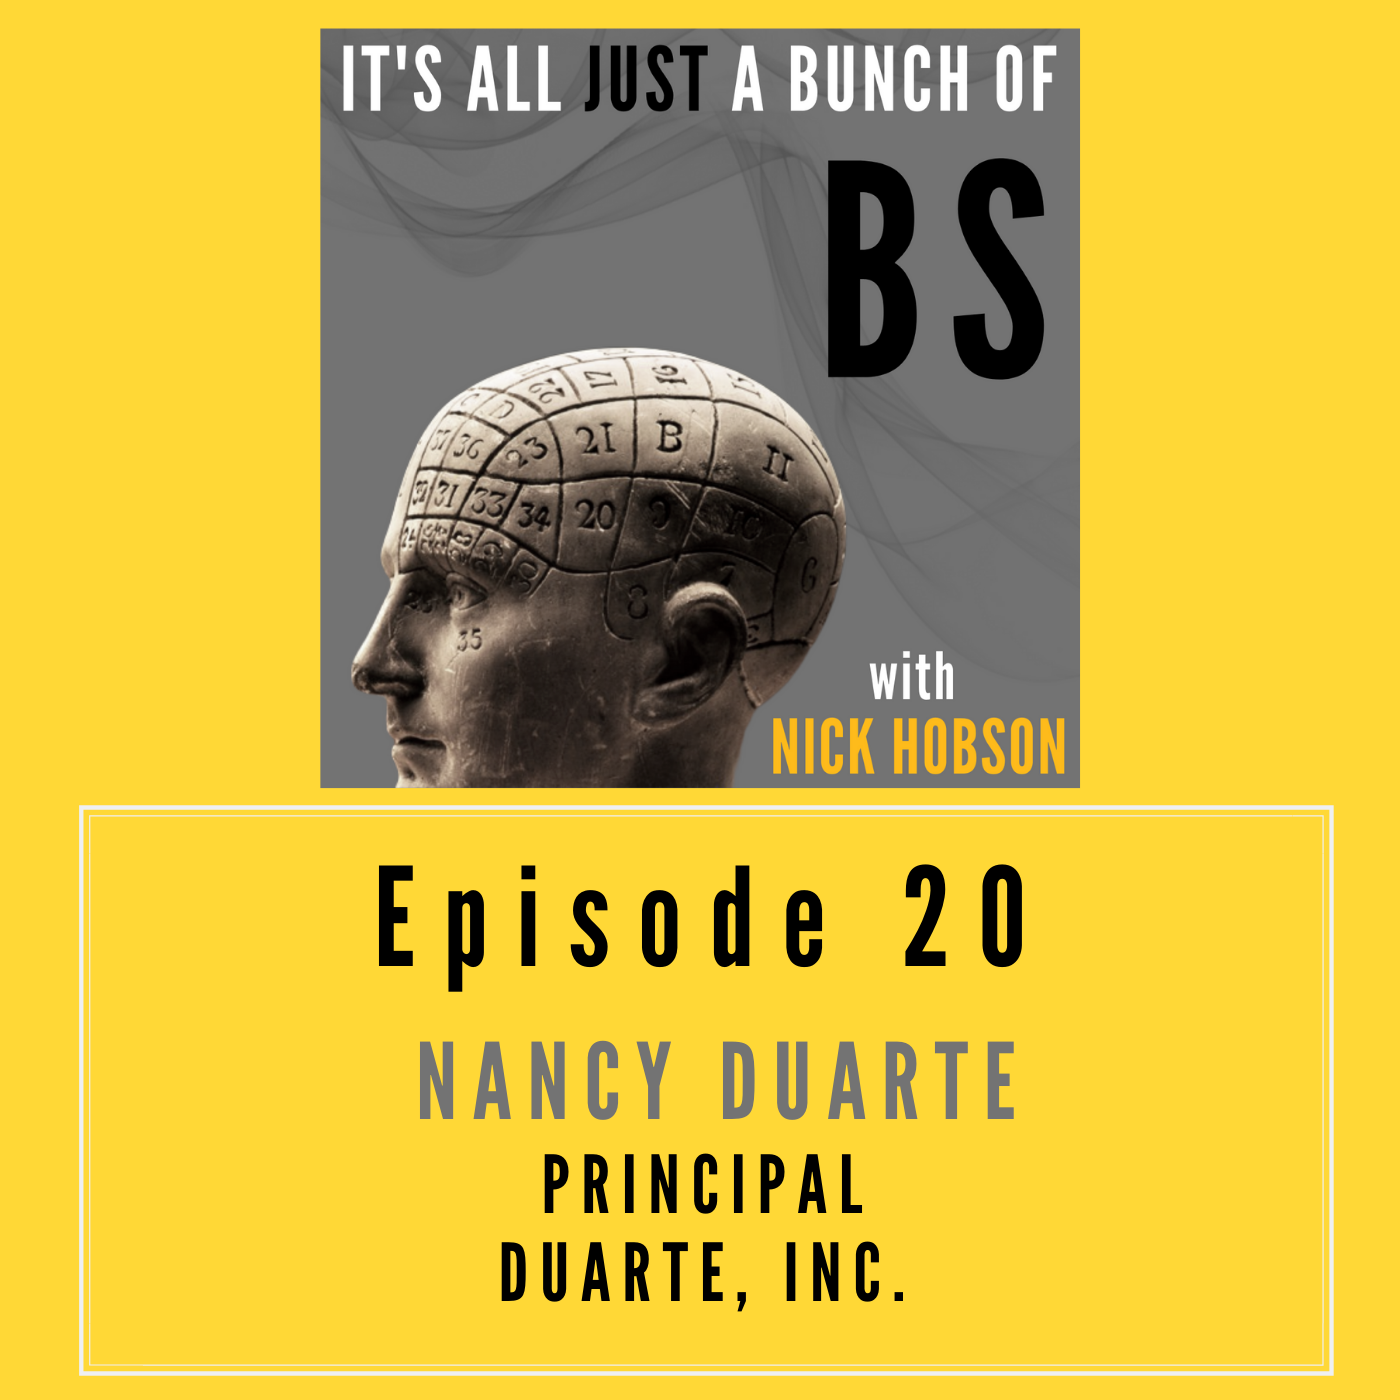 Episode 20 with NANCY DUARTE: Behind Every Behavior There's a Story to Tell